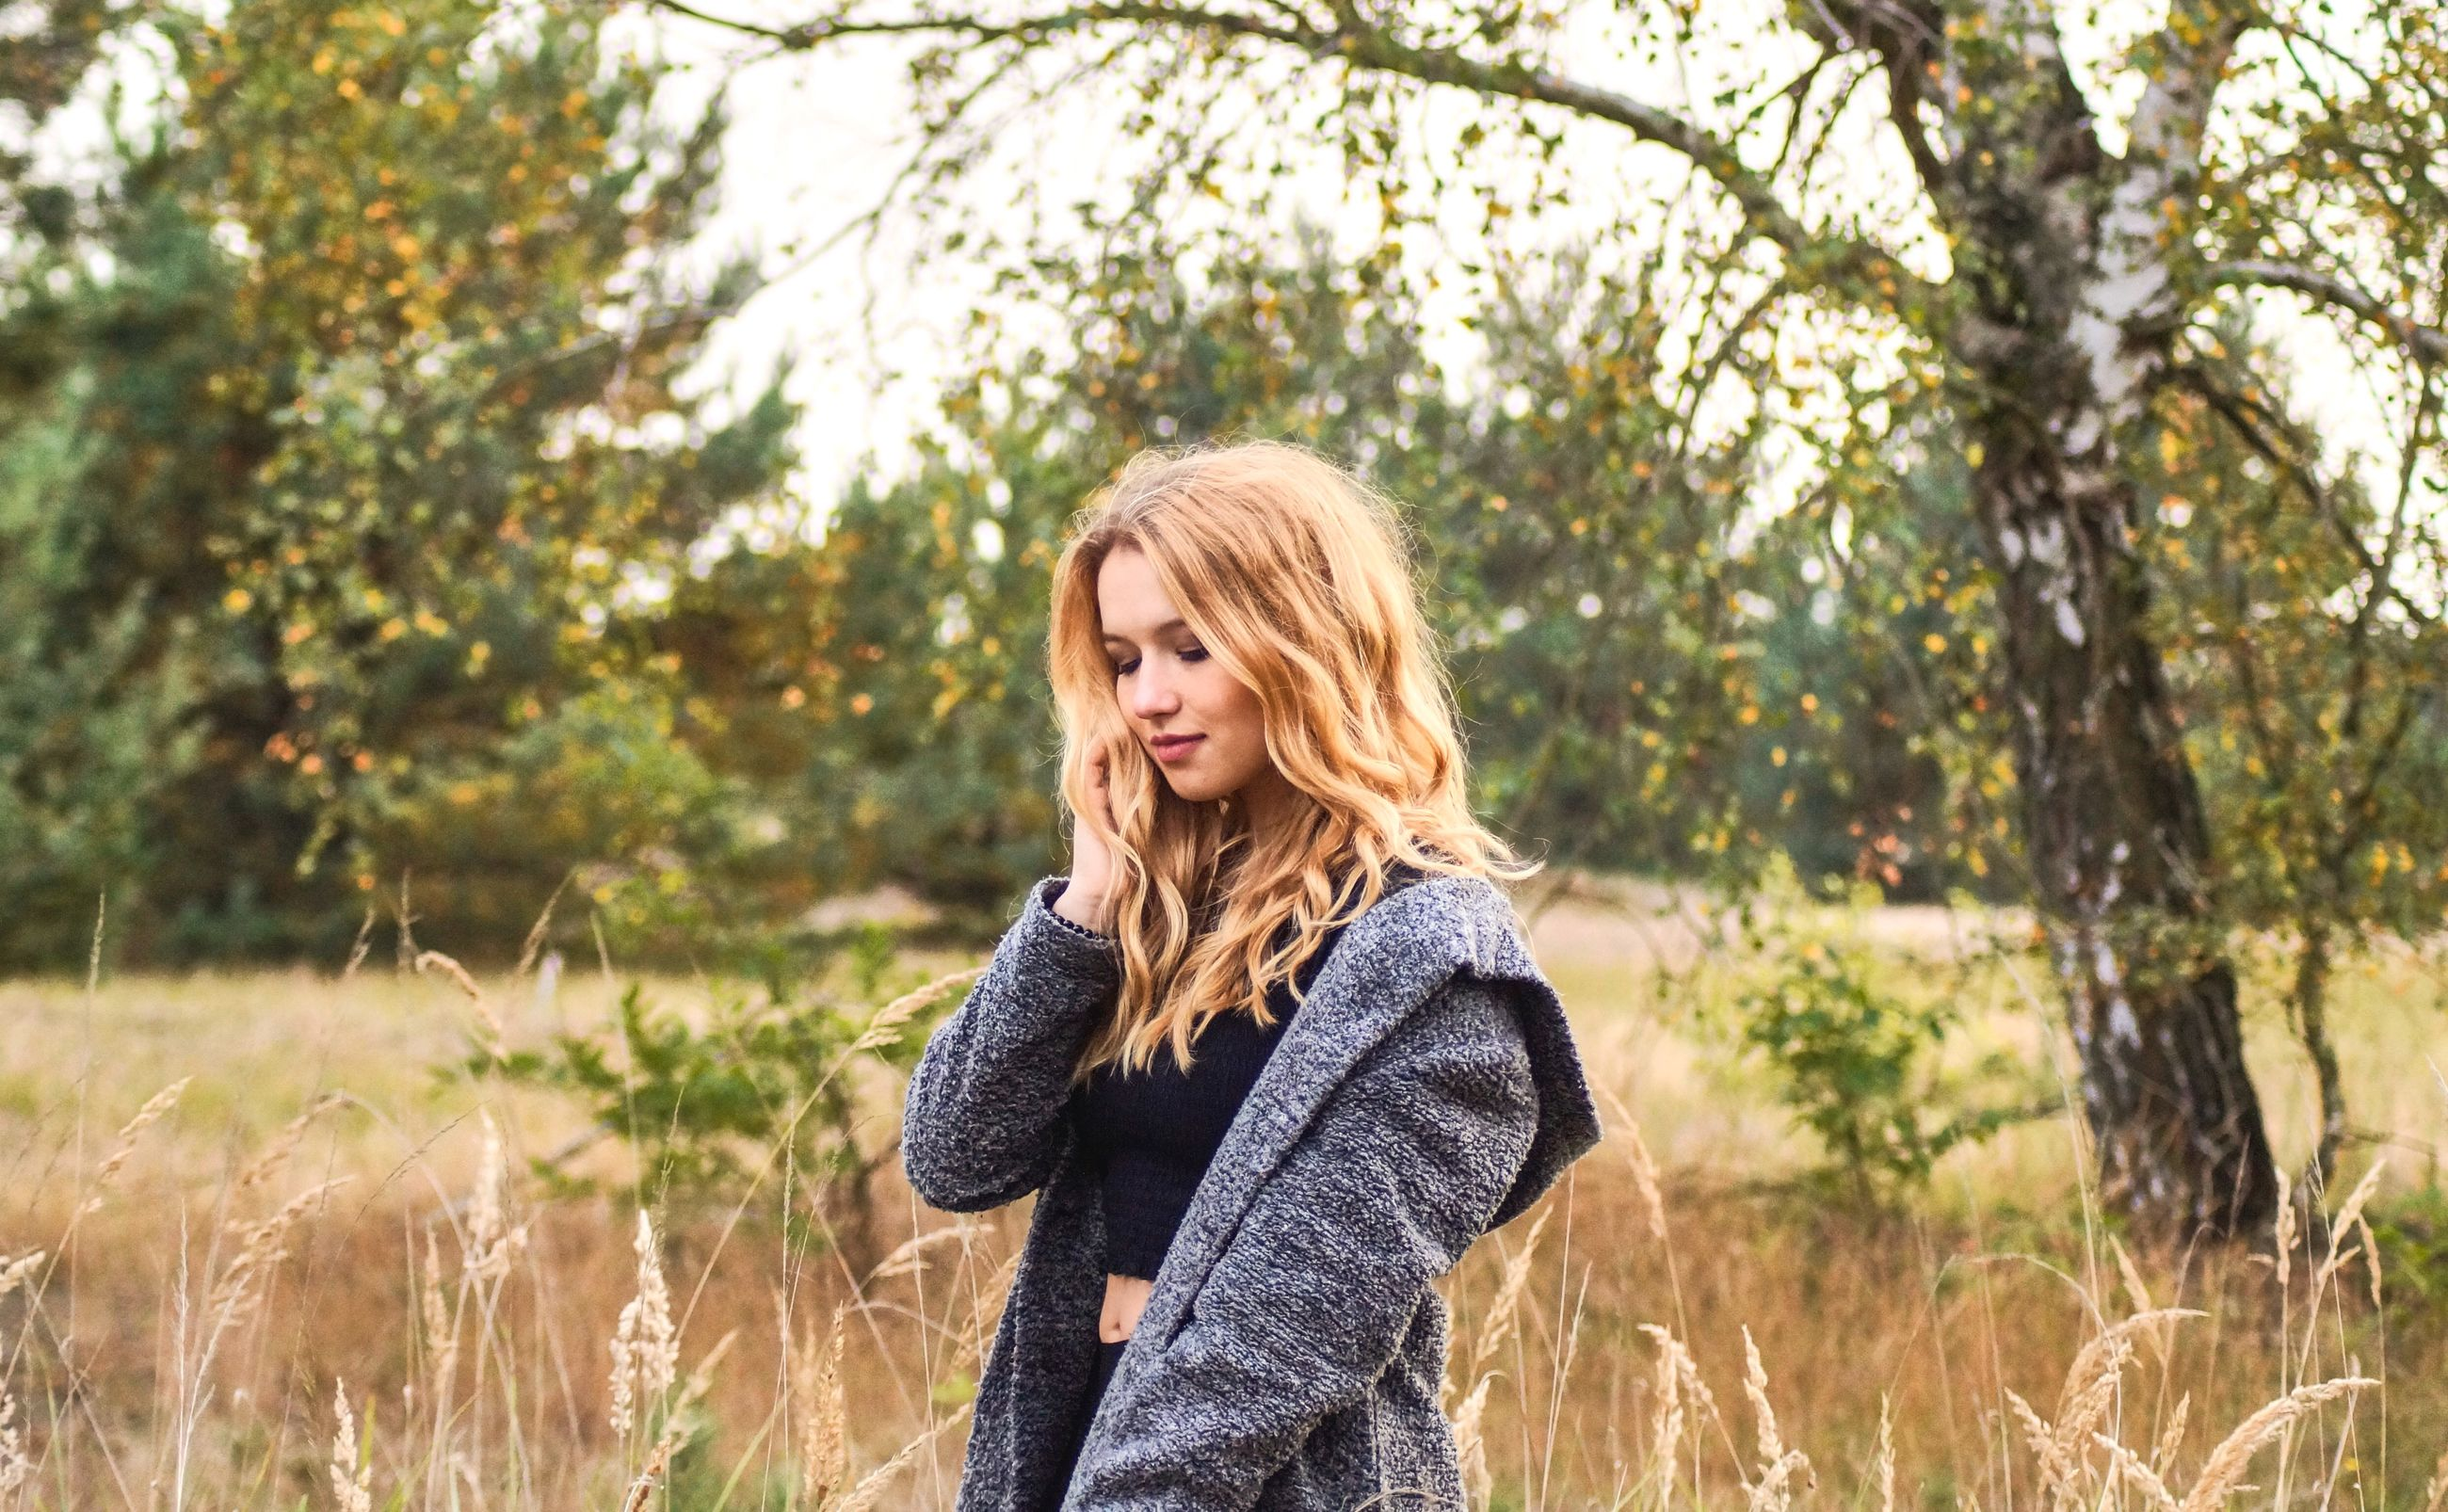 blond hair, hair, one person, young adult, long hair, young women, tree, plant, portrait, hairstyle, women, standing, beautiful woman, clothing, leisure activity, beauty, nature, adult, casual clothing, outdoors, contemplation